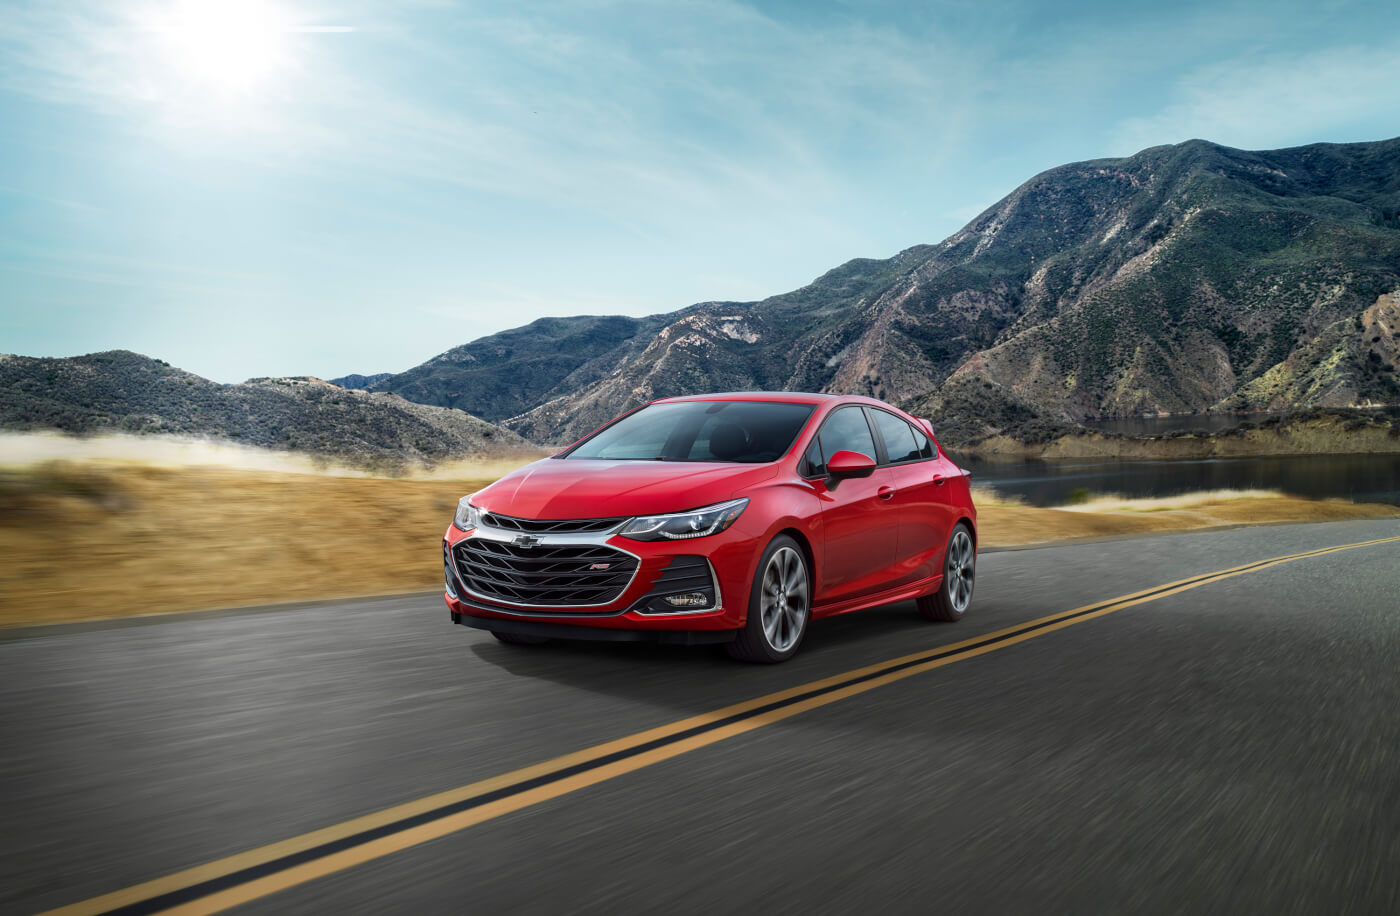 2019 Cruze Hatch RS' front fascia and grille is all-new.